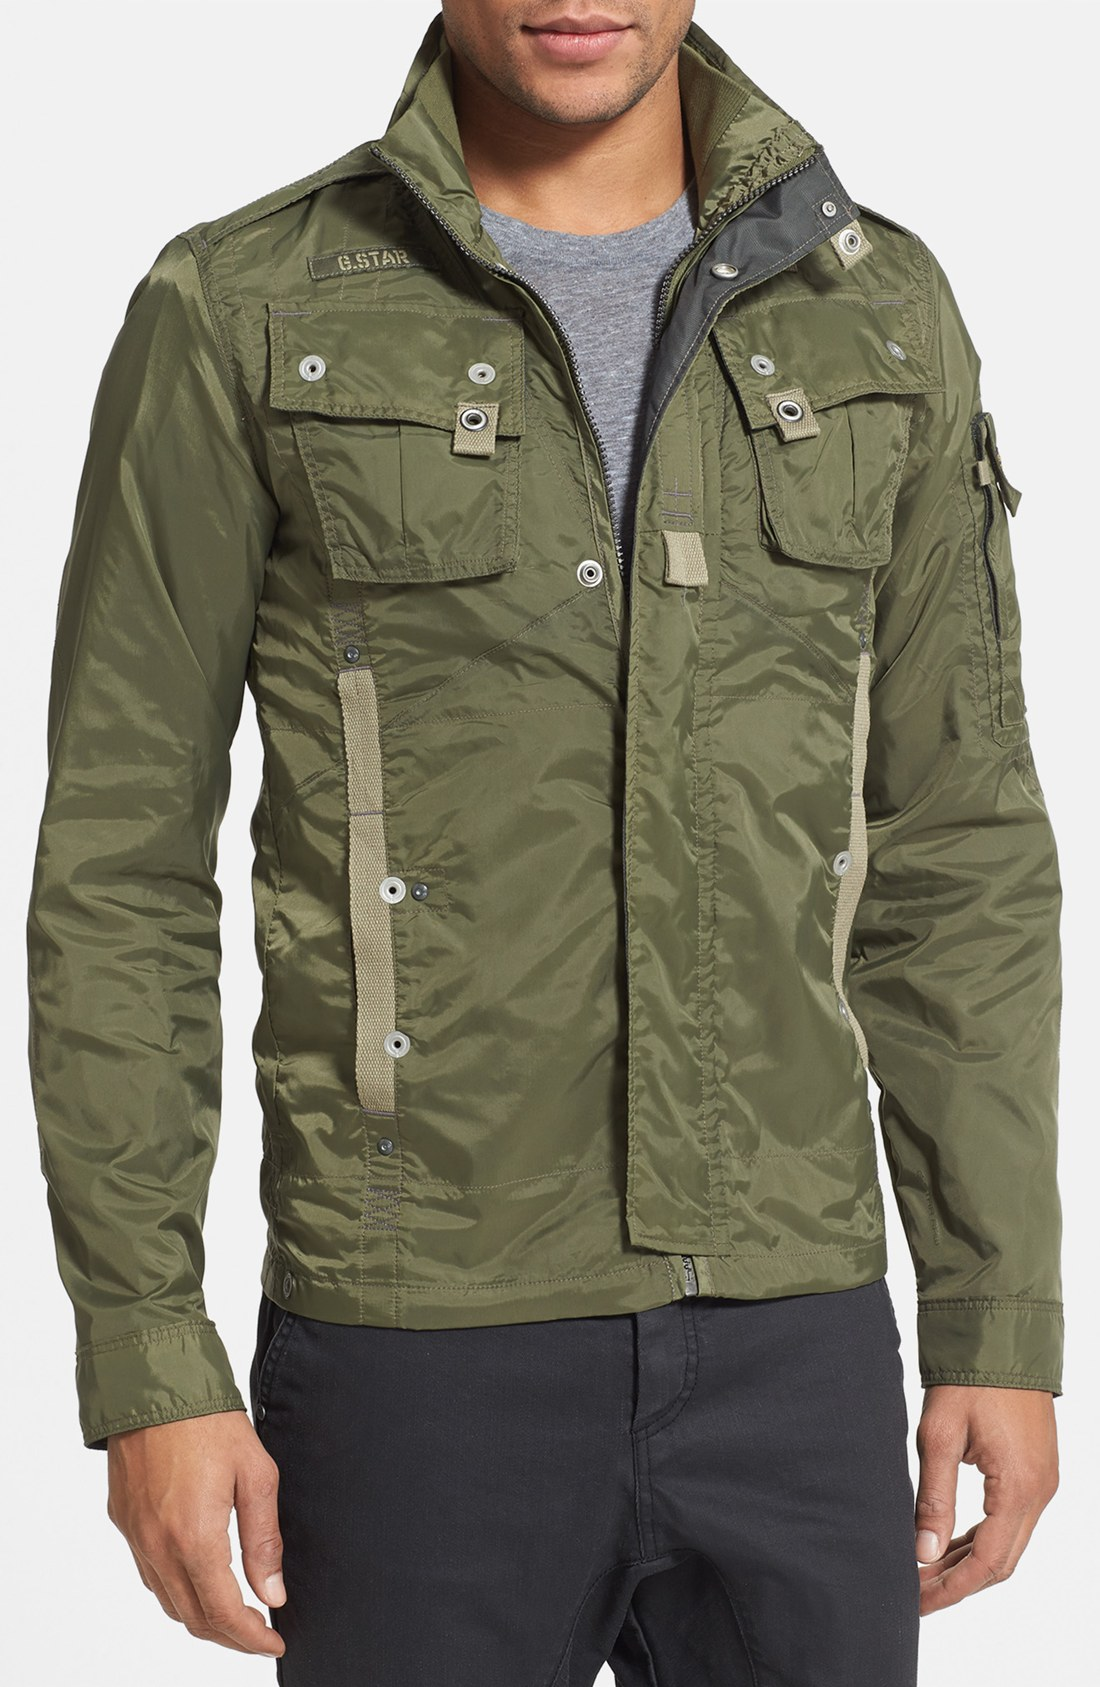 lyst g star raw recolite lightweight military jacket in green for men. Black Bedroom Furniture Sets. Home Design Ideas